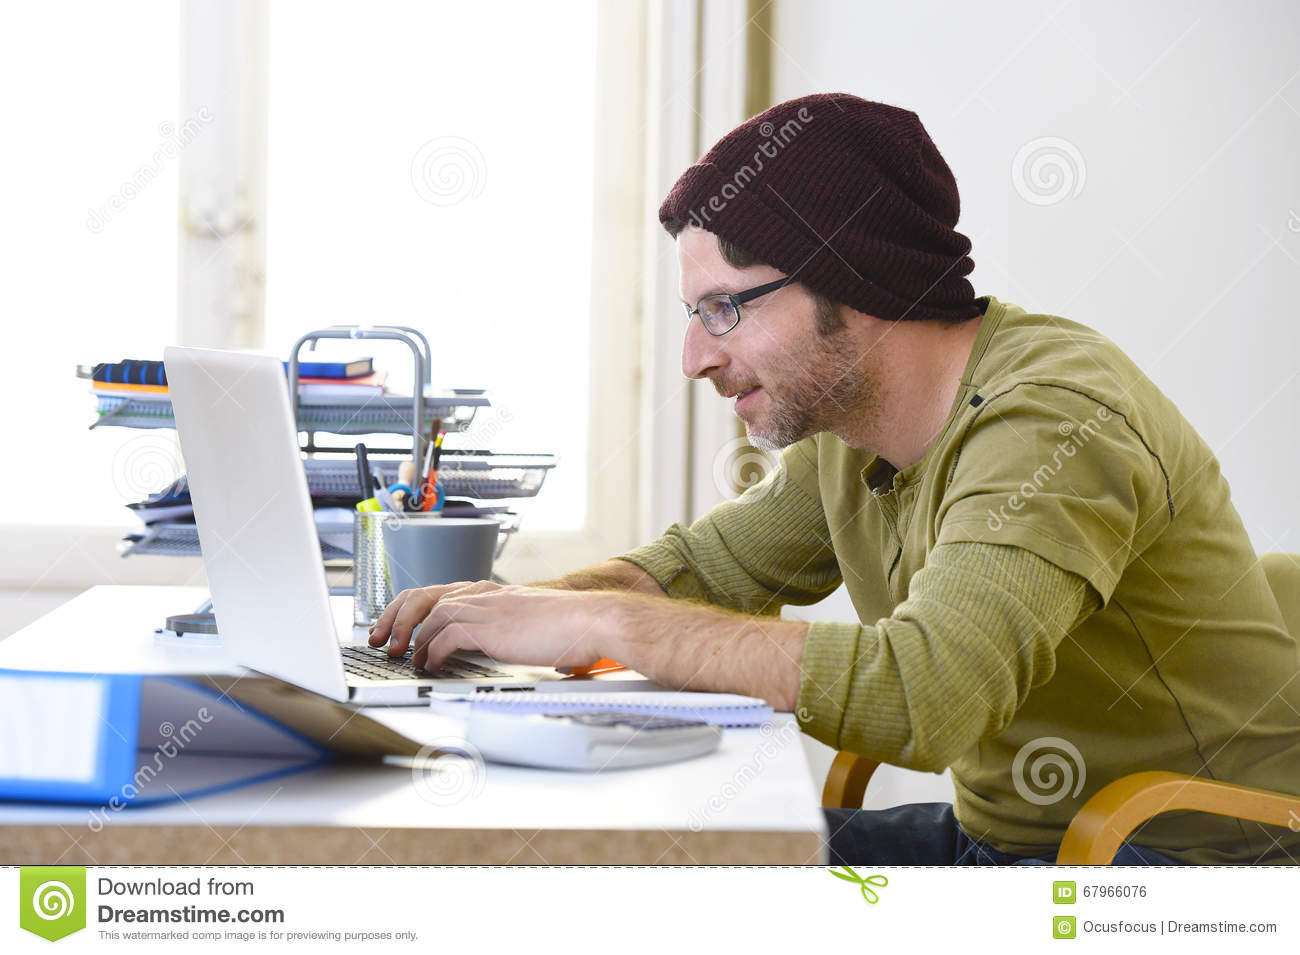 business businessman computer concept corporate creative employed freelancer happy hipster home laptop modern office portrait self worker working